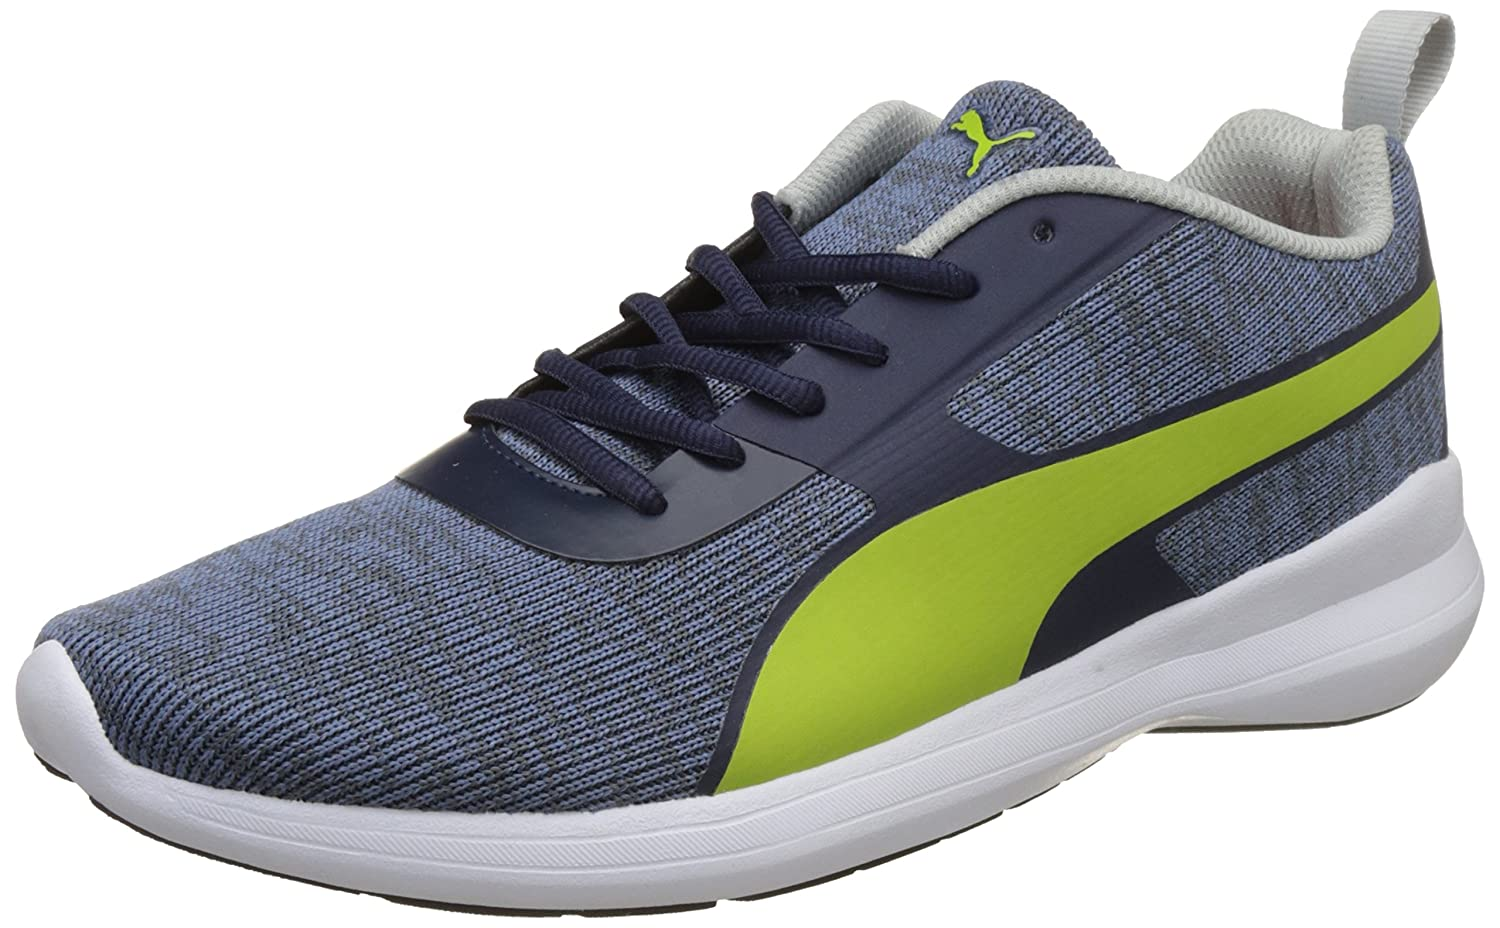 Puma Men s Styx Evo Idp Sneakers  Buy Online at Low Prices in India -  Amazon.in 506236085